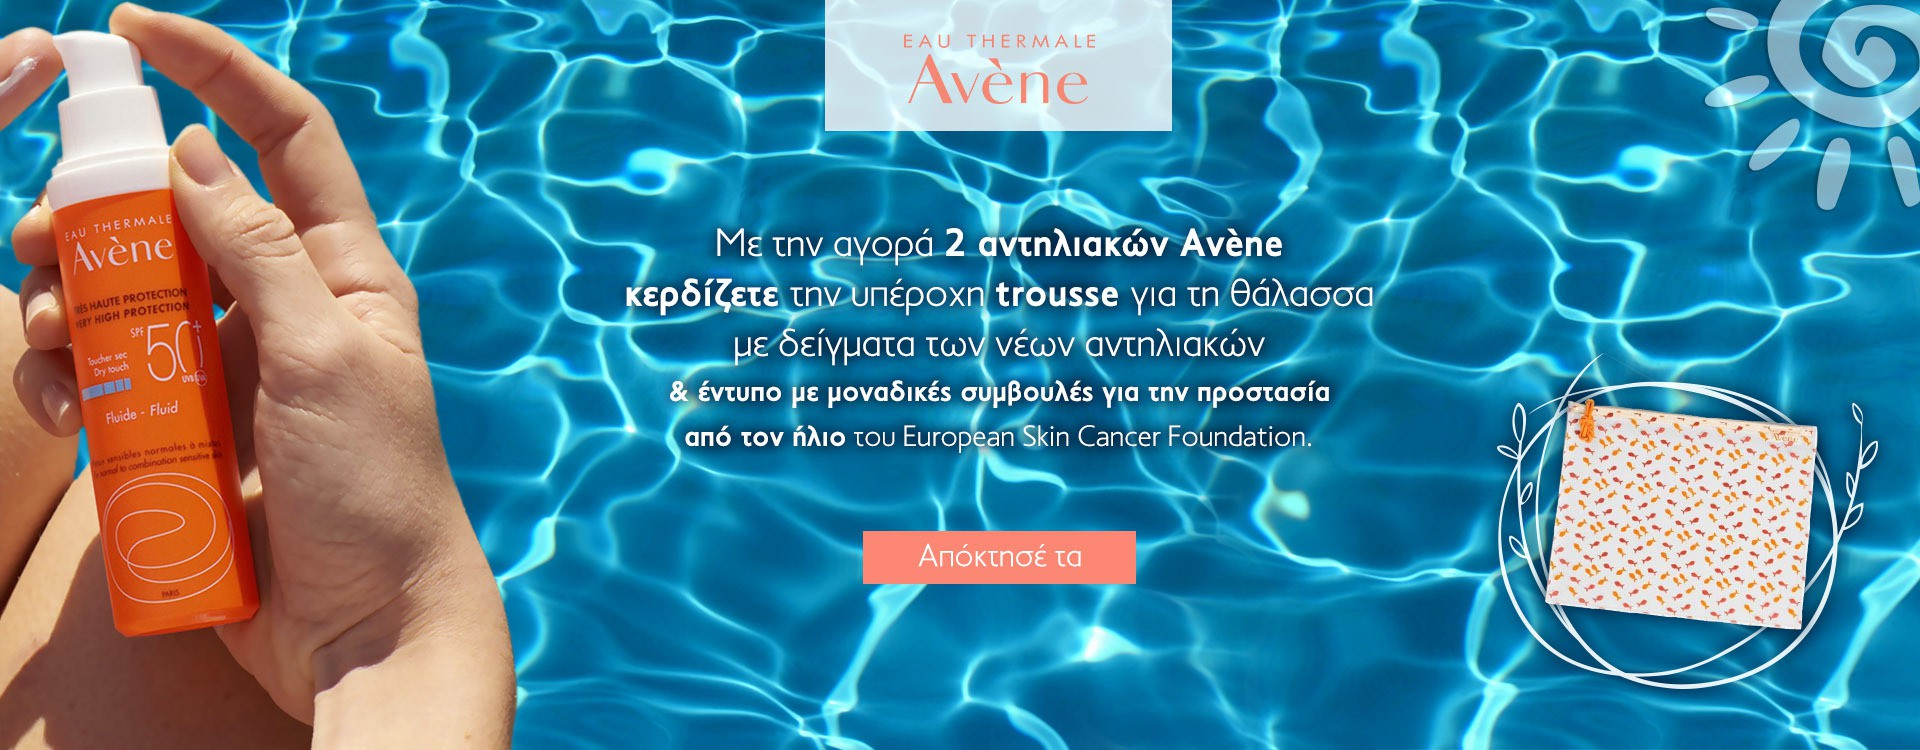 Slider avene suncare may18 1920x750